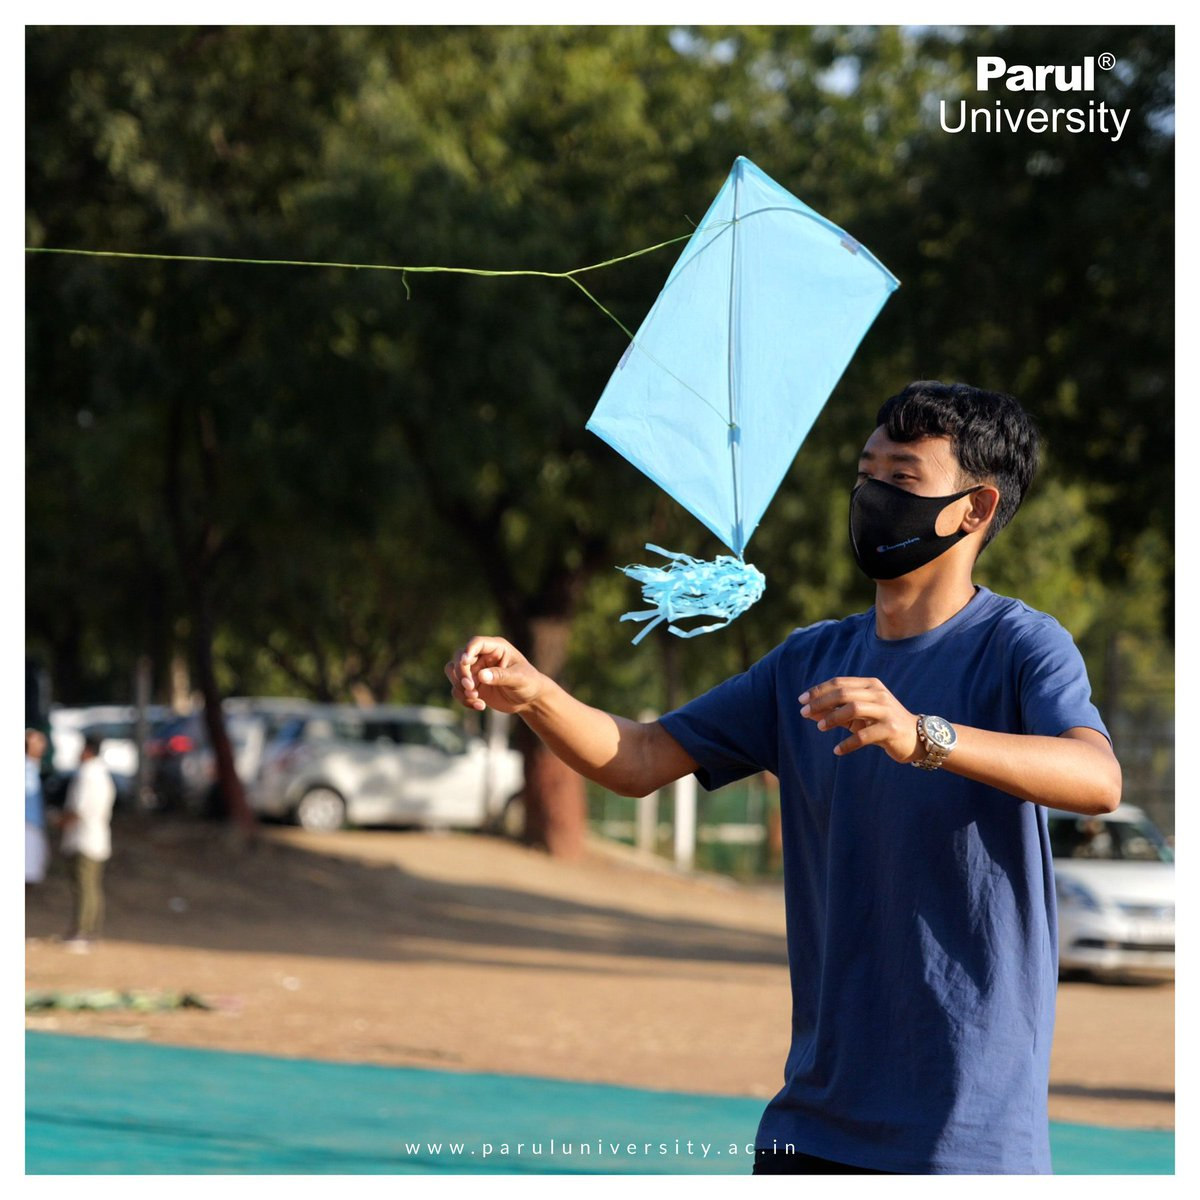 #PUHangout #MakarSankranti #ParulUniversity  Be it flying the kite, holding the Manjha or just sitting back and enjoying the colorful sight of the kite filled skies; PU students did all of it in style. Herewith, sharing the glimpses of Makar Sankranti celebrations.